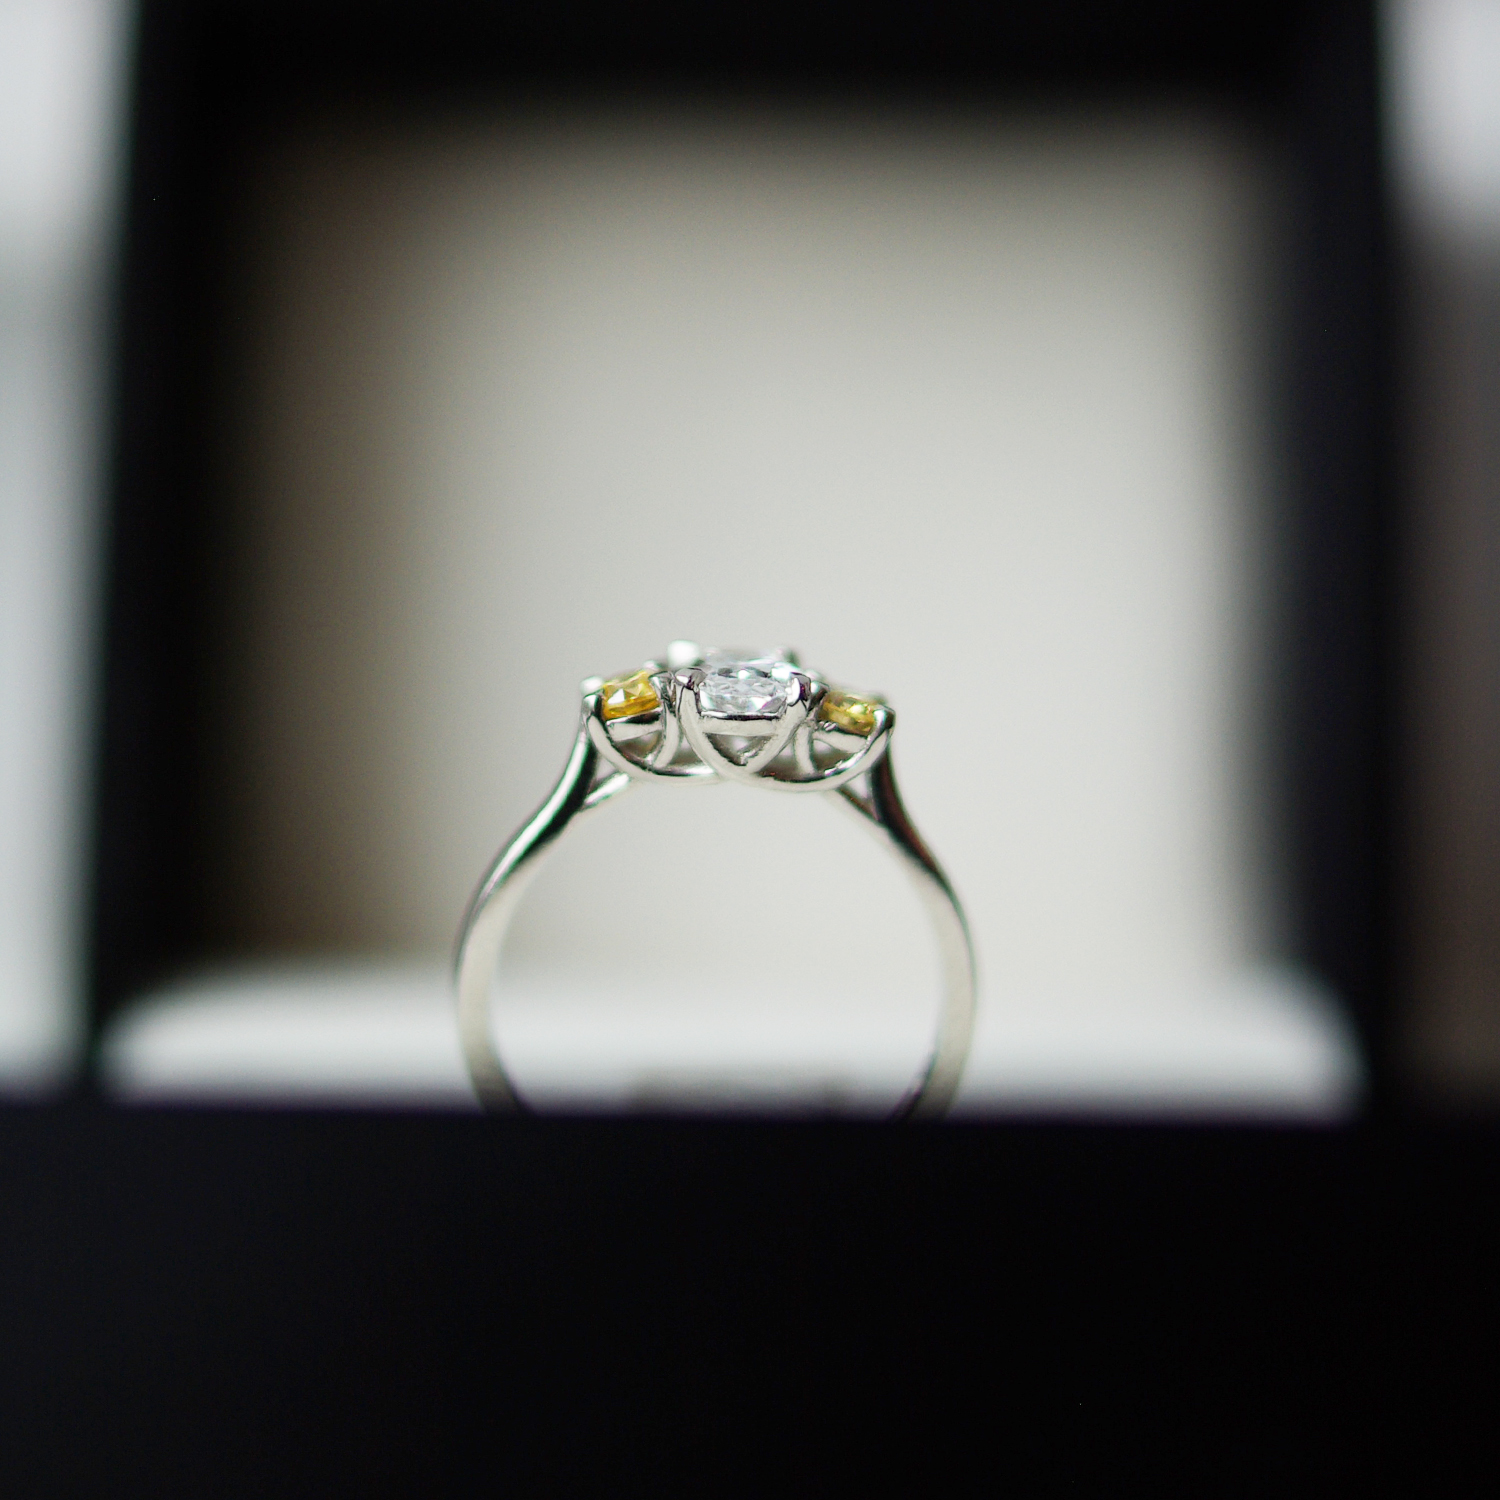 Trilogy Engagement Ring With Two Round Brilliant Cut Yellow Diamonds And A Colourless Oval Cut Diamond